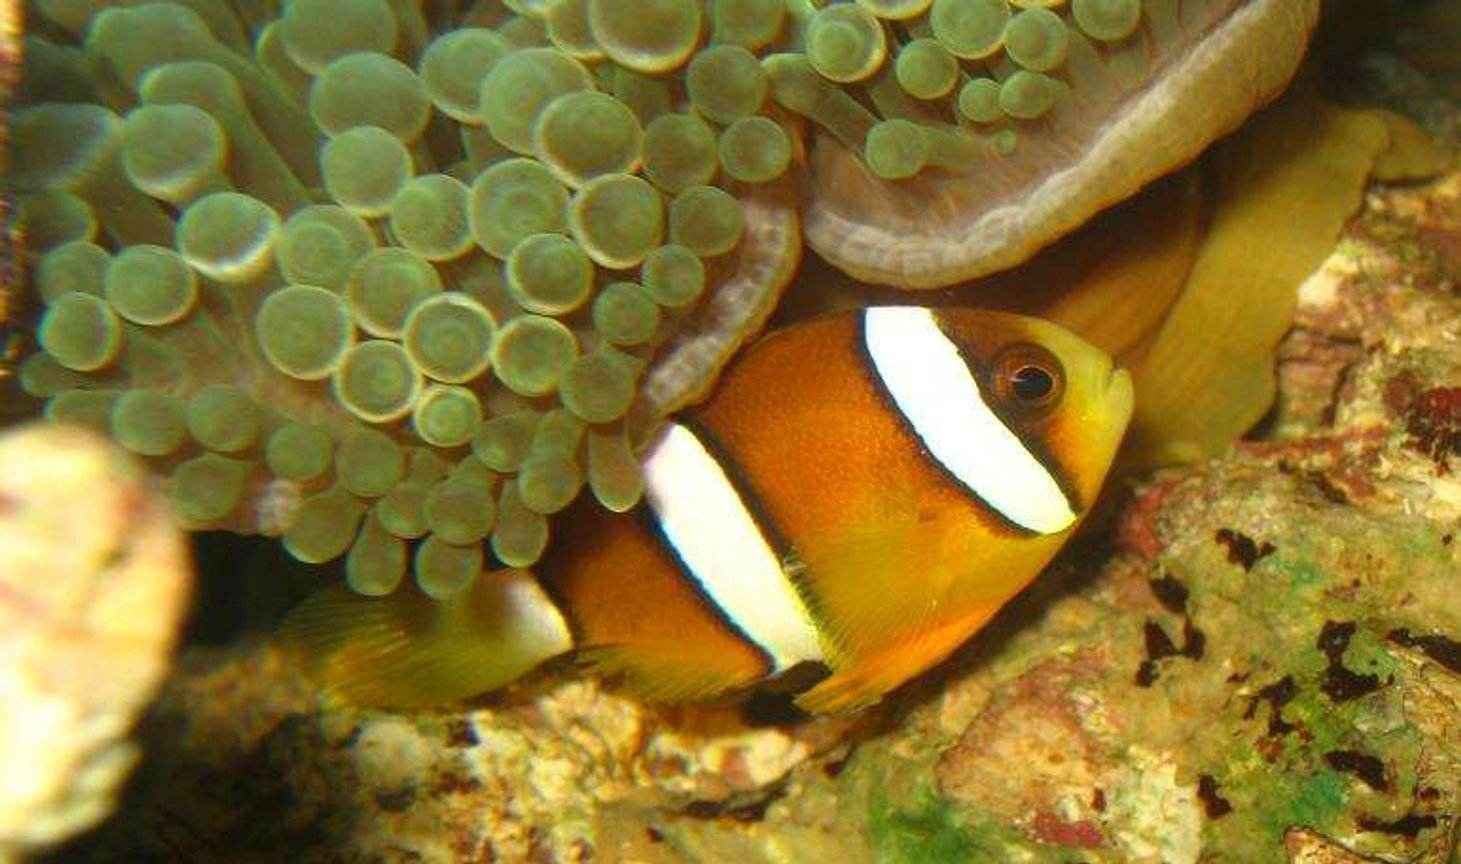 saltwater fish - amphiprion clarkii - clarkii clownfish stocking in 4 gallons tank - Maroon Clownfish